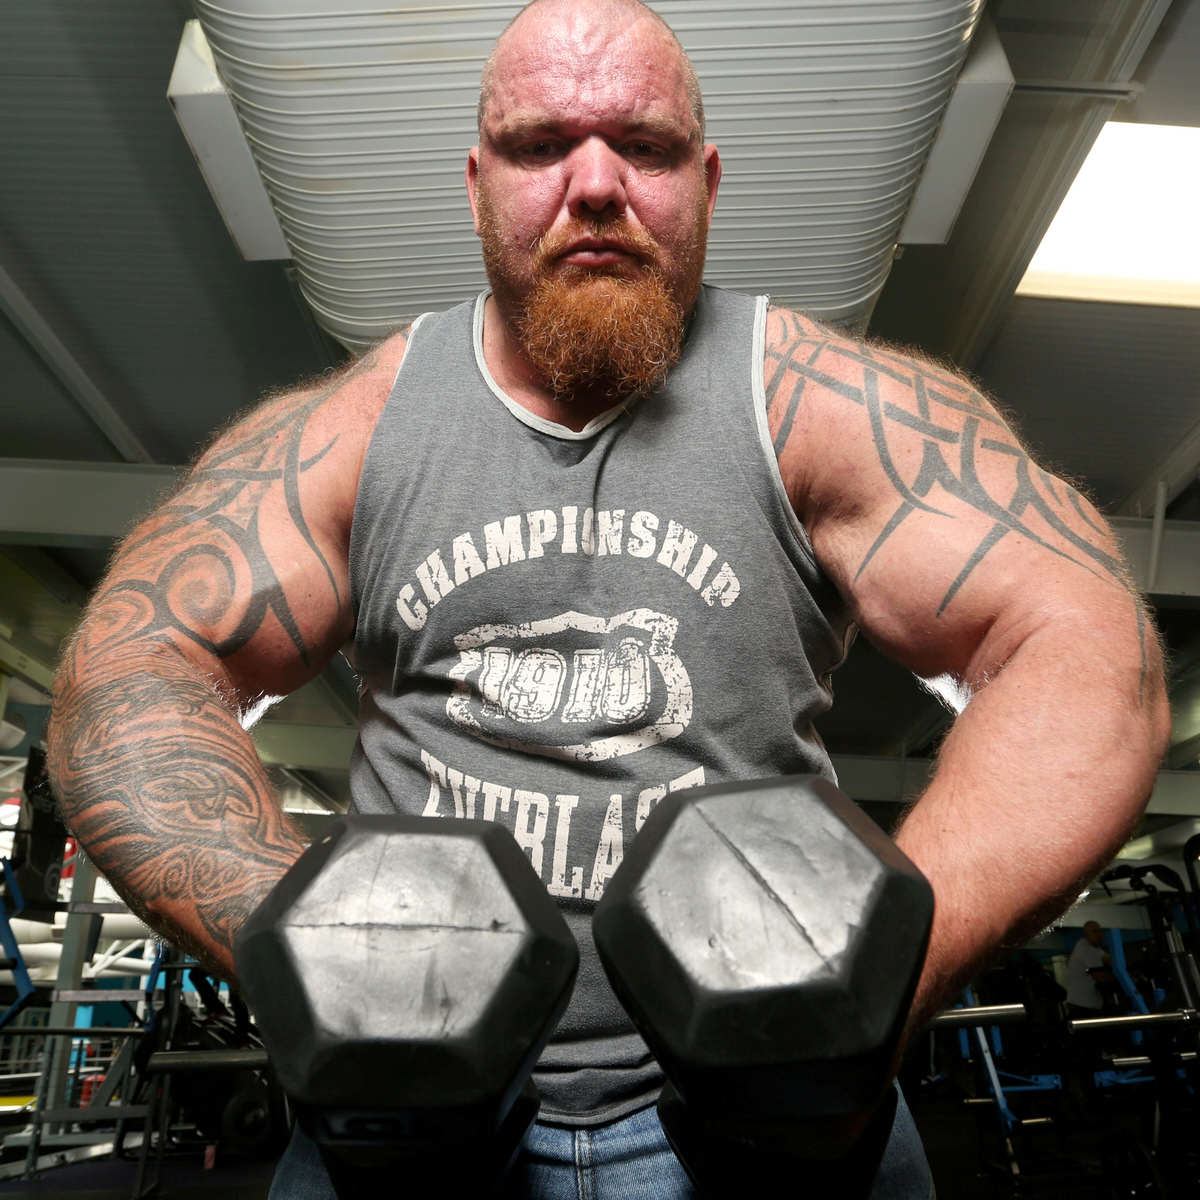 Man Turns Life Around To Set Record For UKs Largest Biceps SWNS BIGGEST BICEPS 24